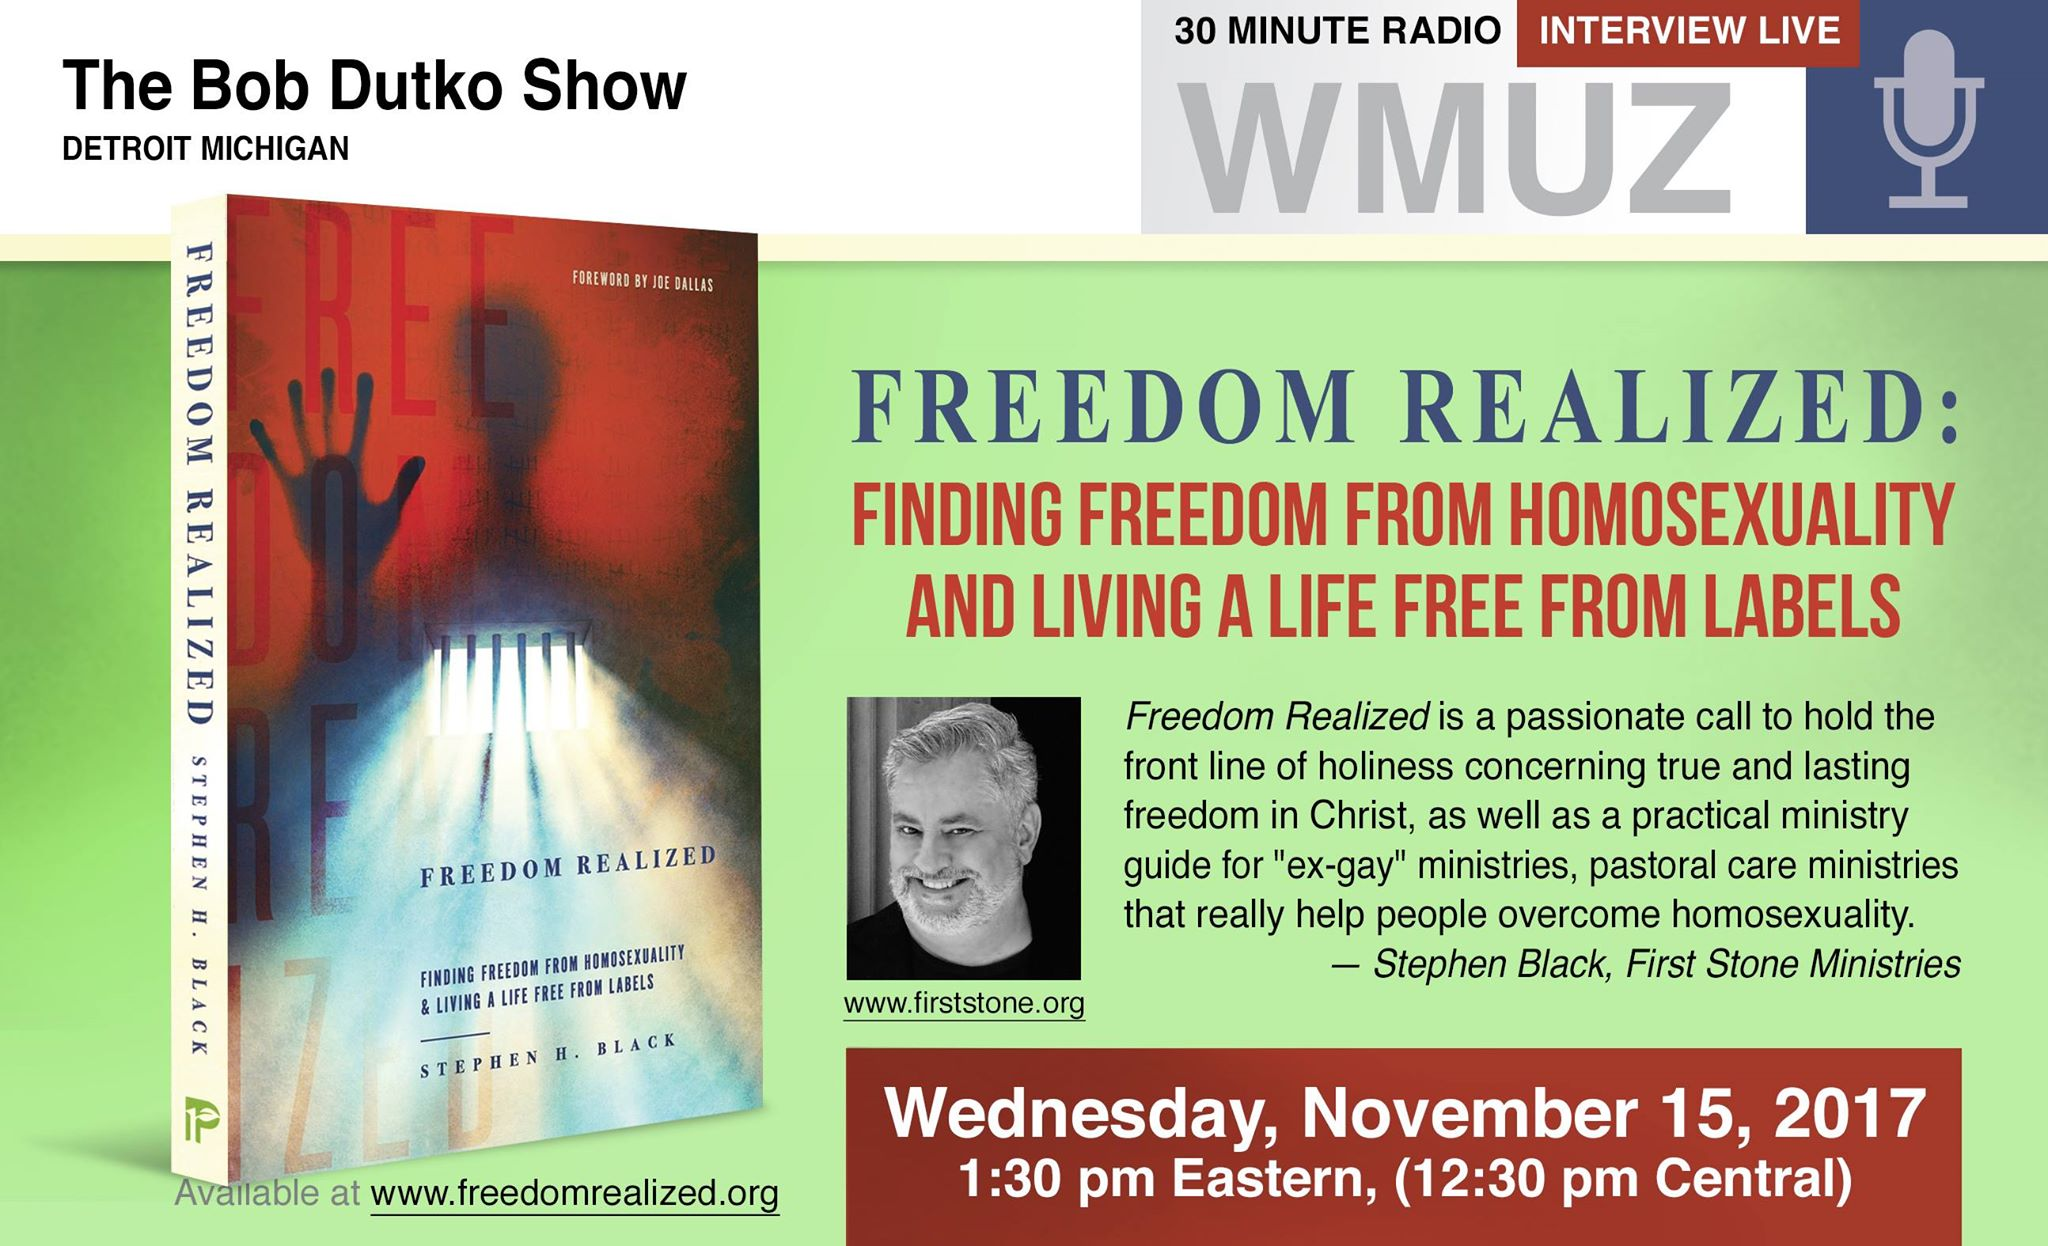 3 - The Bob Dutko Show - Wednesday, November 15, 1_30PM ET